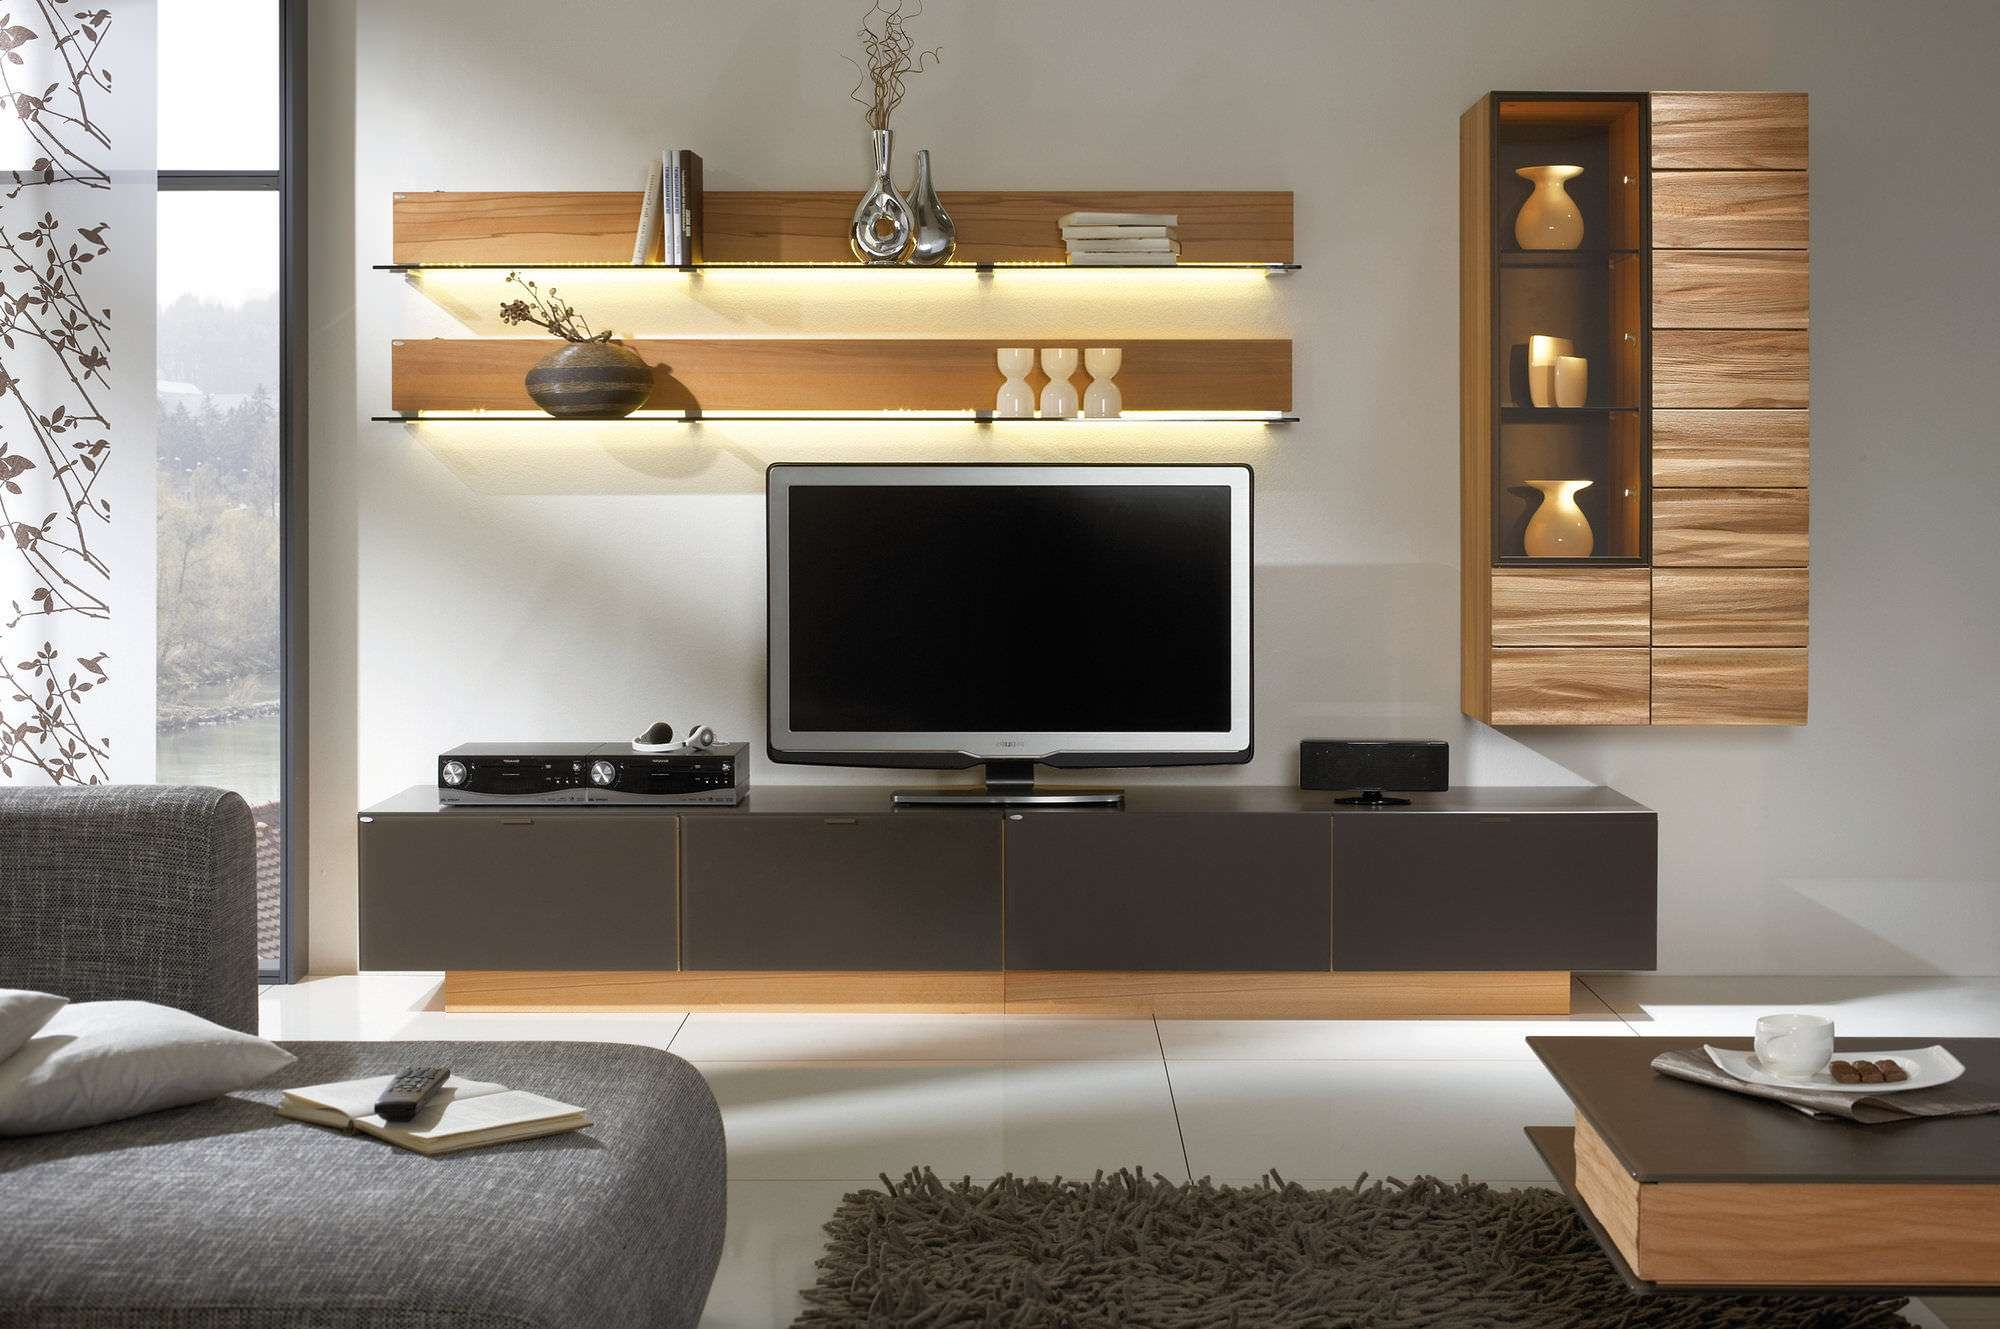 Fetching Gloss Lacquer Stylist Tv Stand And Stylist Tv Stand Intended For Contemporary Tv Cabinets (View 16 of 20)